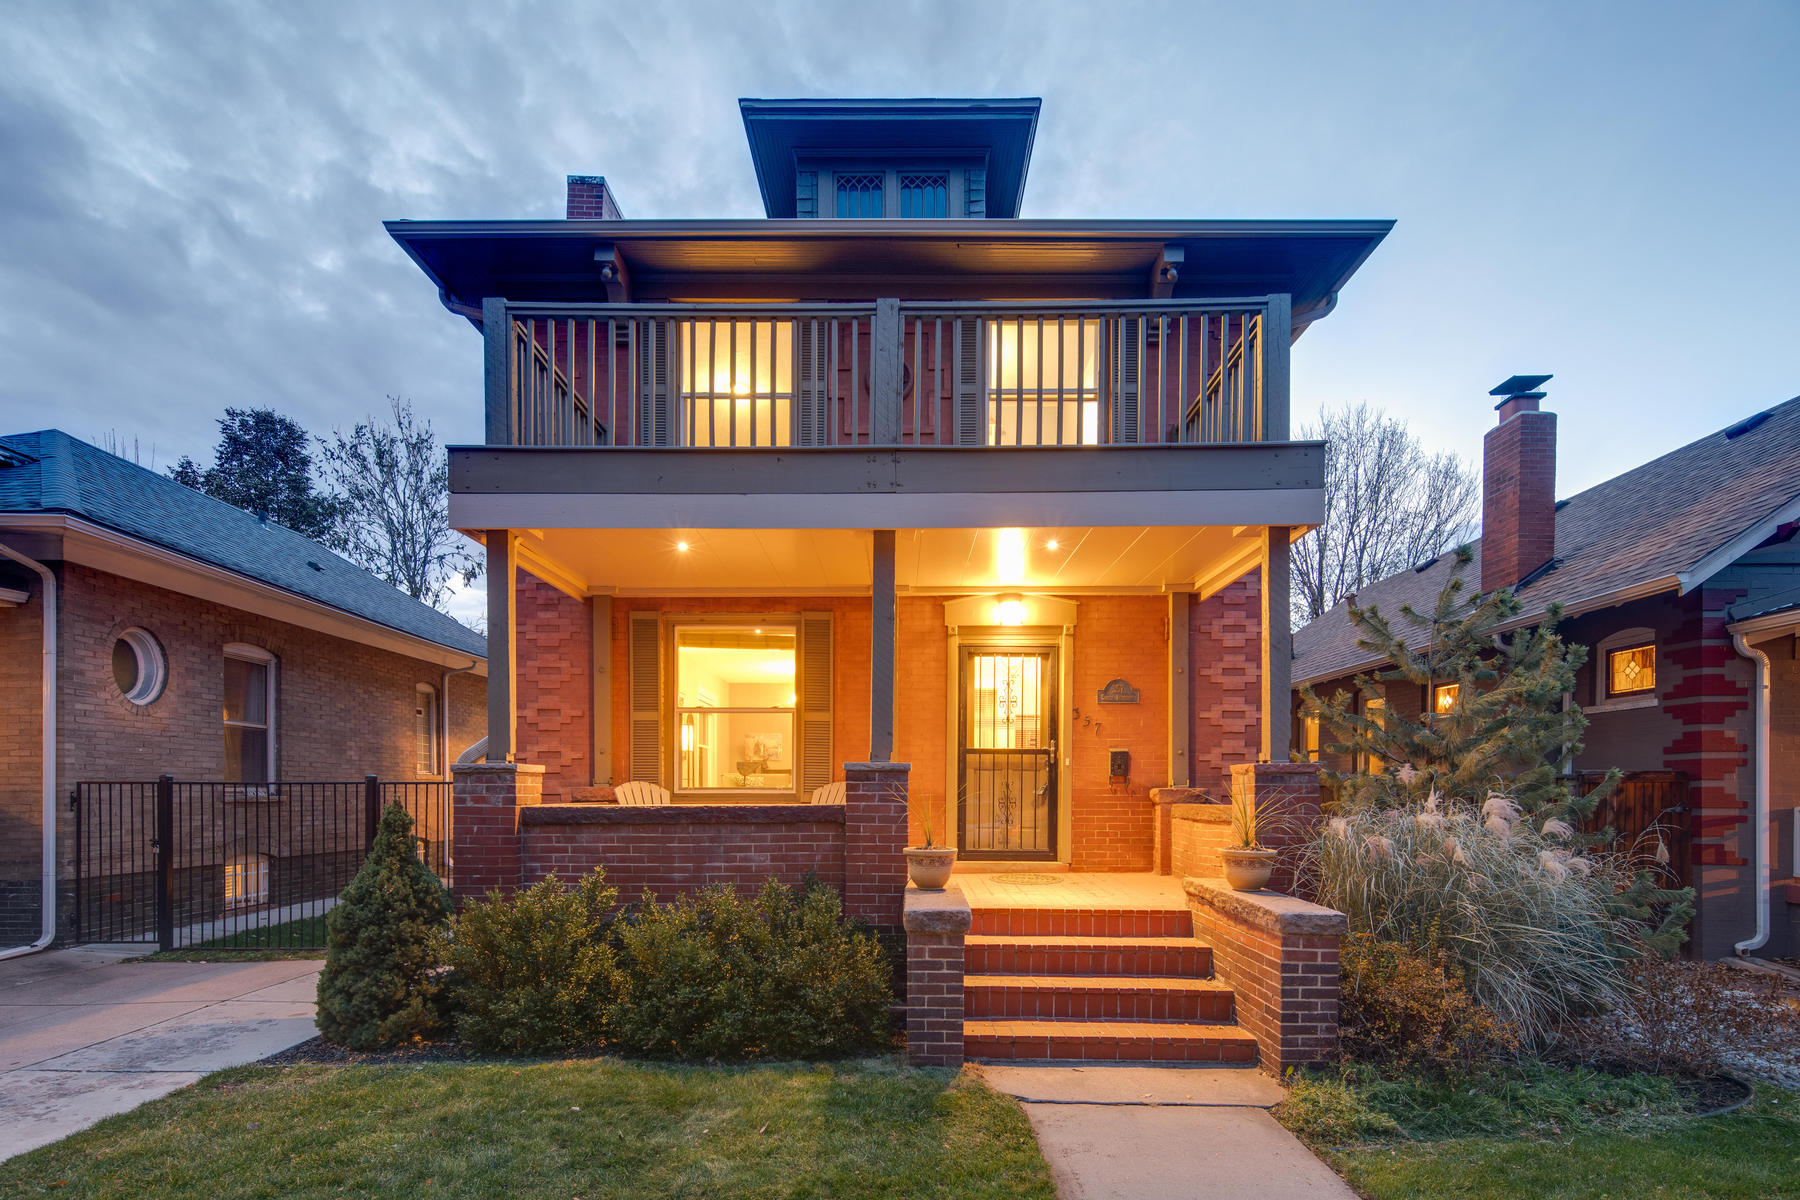 Property for Active at Charming Denver Square With Large Windows 357 S Downing Street Denver, Colorado 80209 United States